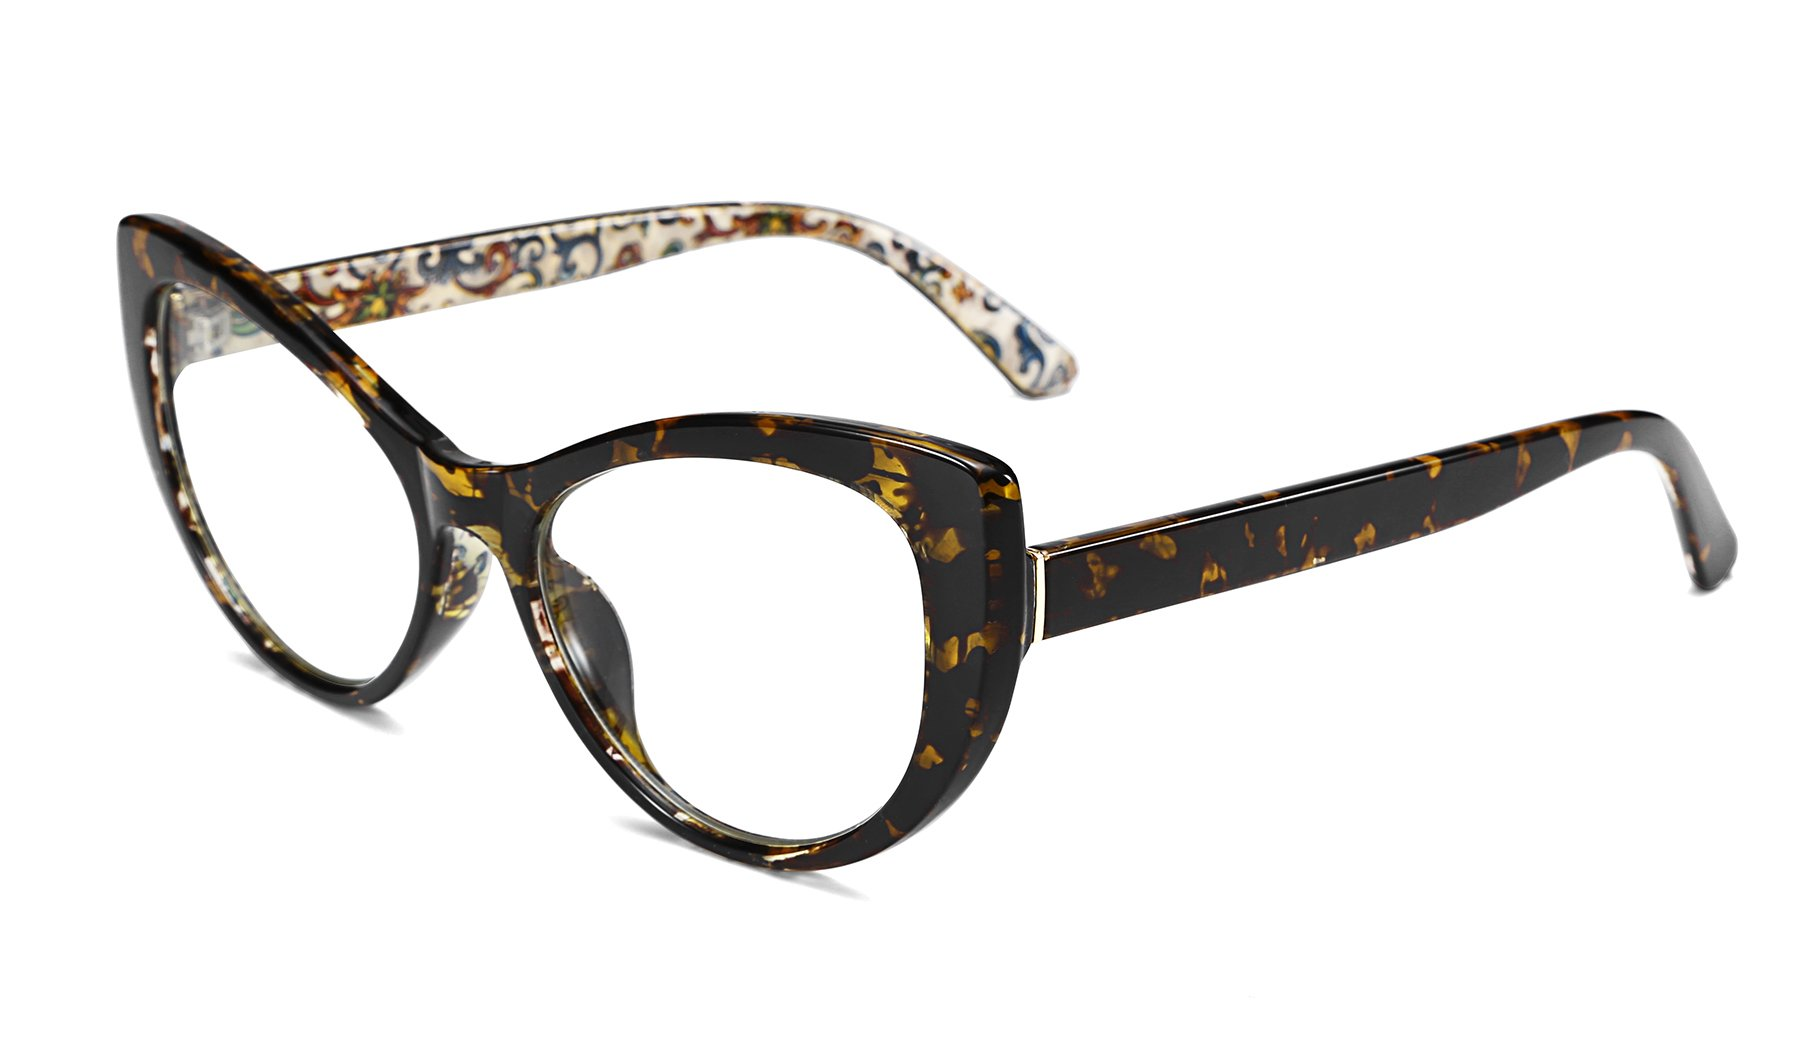 FEISEDY Women's Cateye Printed Optical Eyewear Non-prescription Eyeglasses Frame f B2441